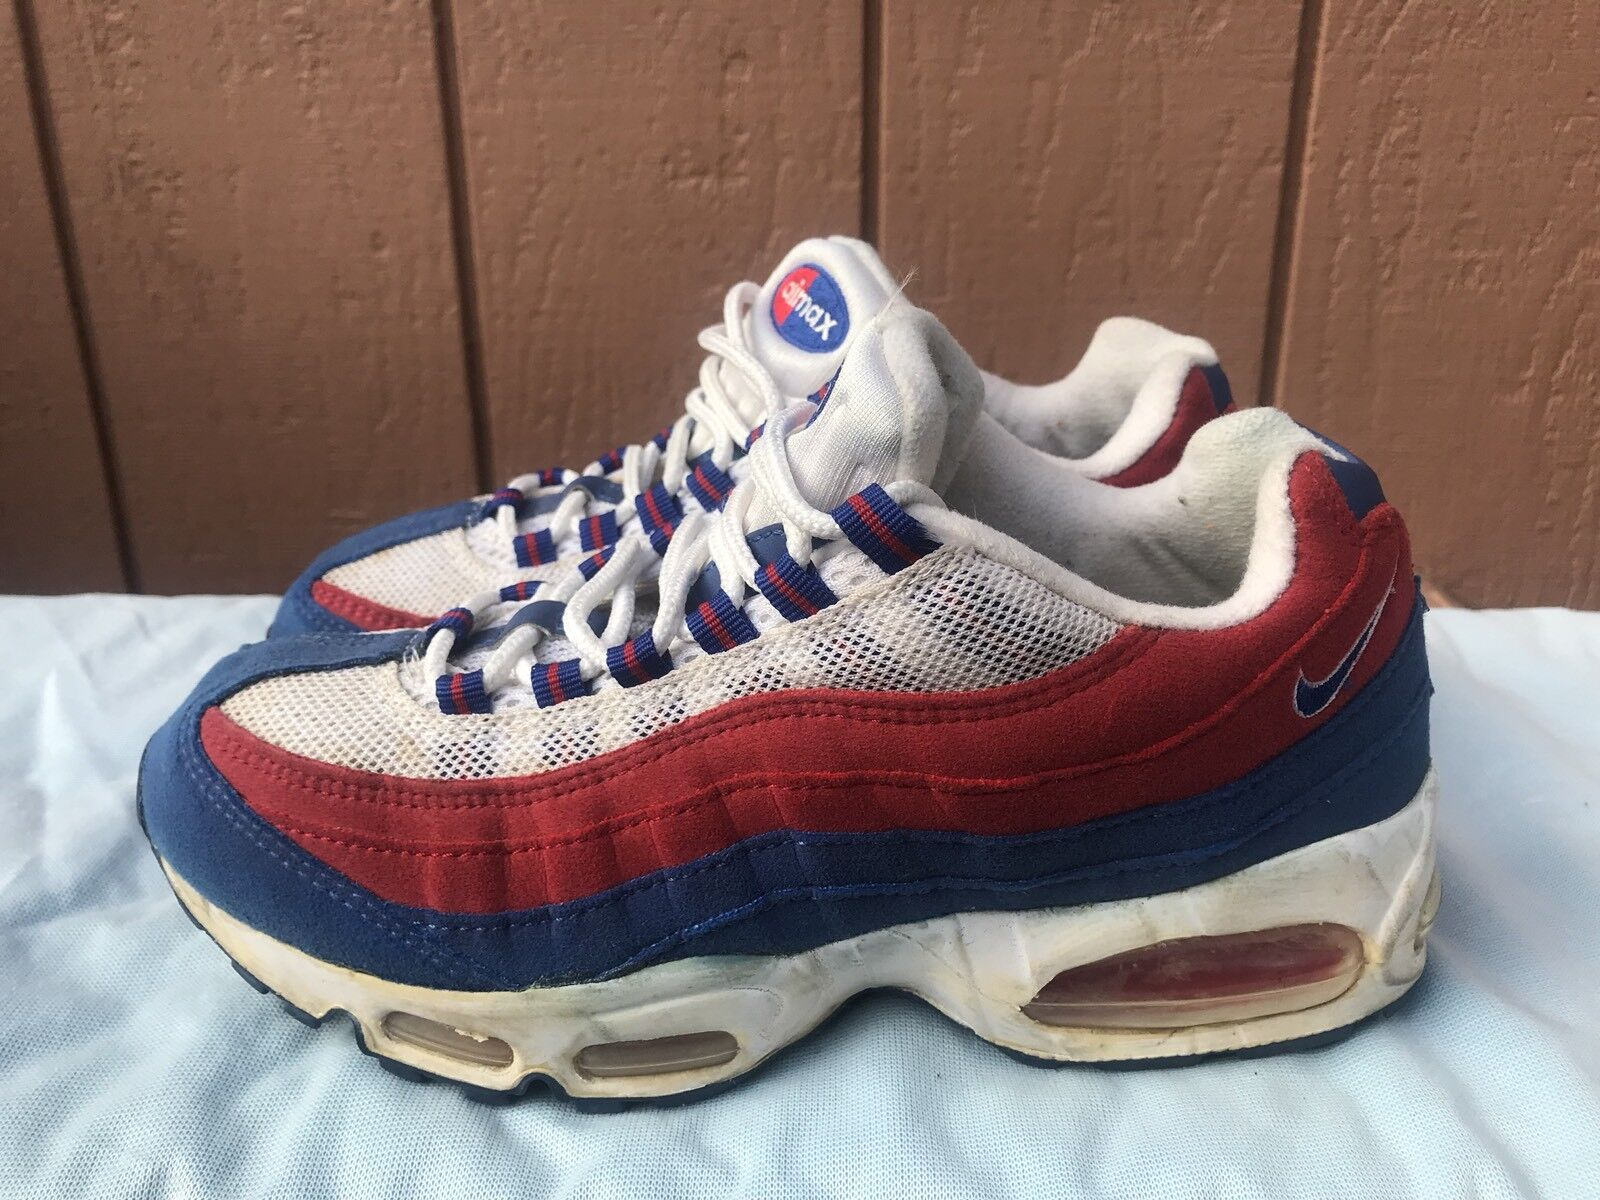 RARE NIKE WOMEN'S AIR MAX '95 ATHLETIC SHOES SIZE US 8.5 698014 142 A3